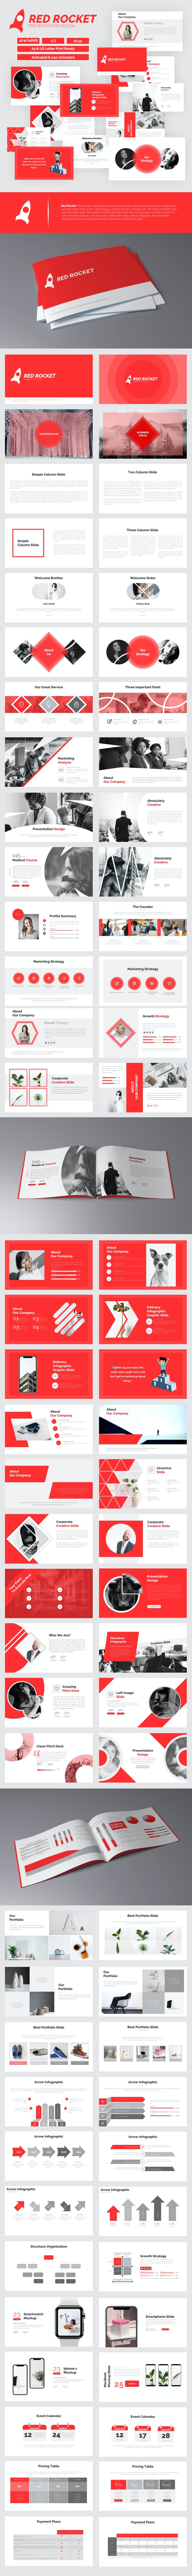 RedRocket Presentation Template - Business PowerPoint Templates